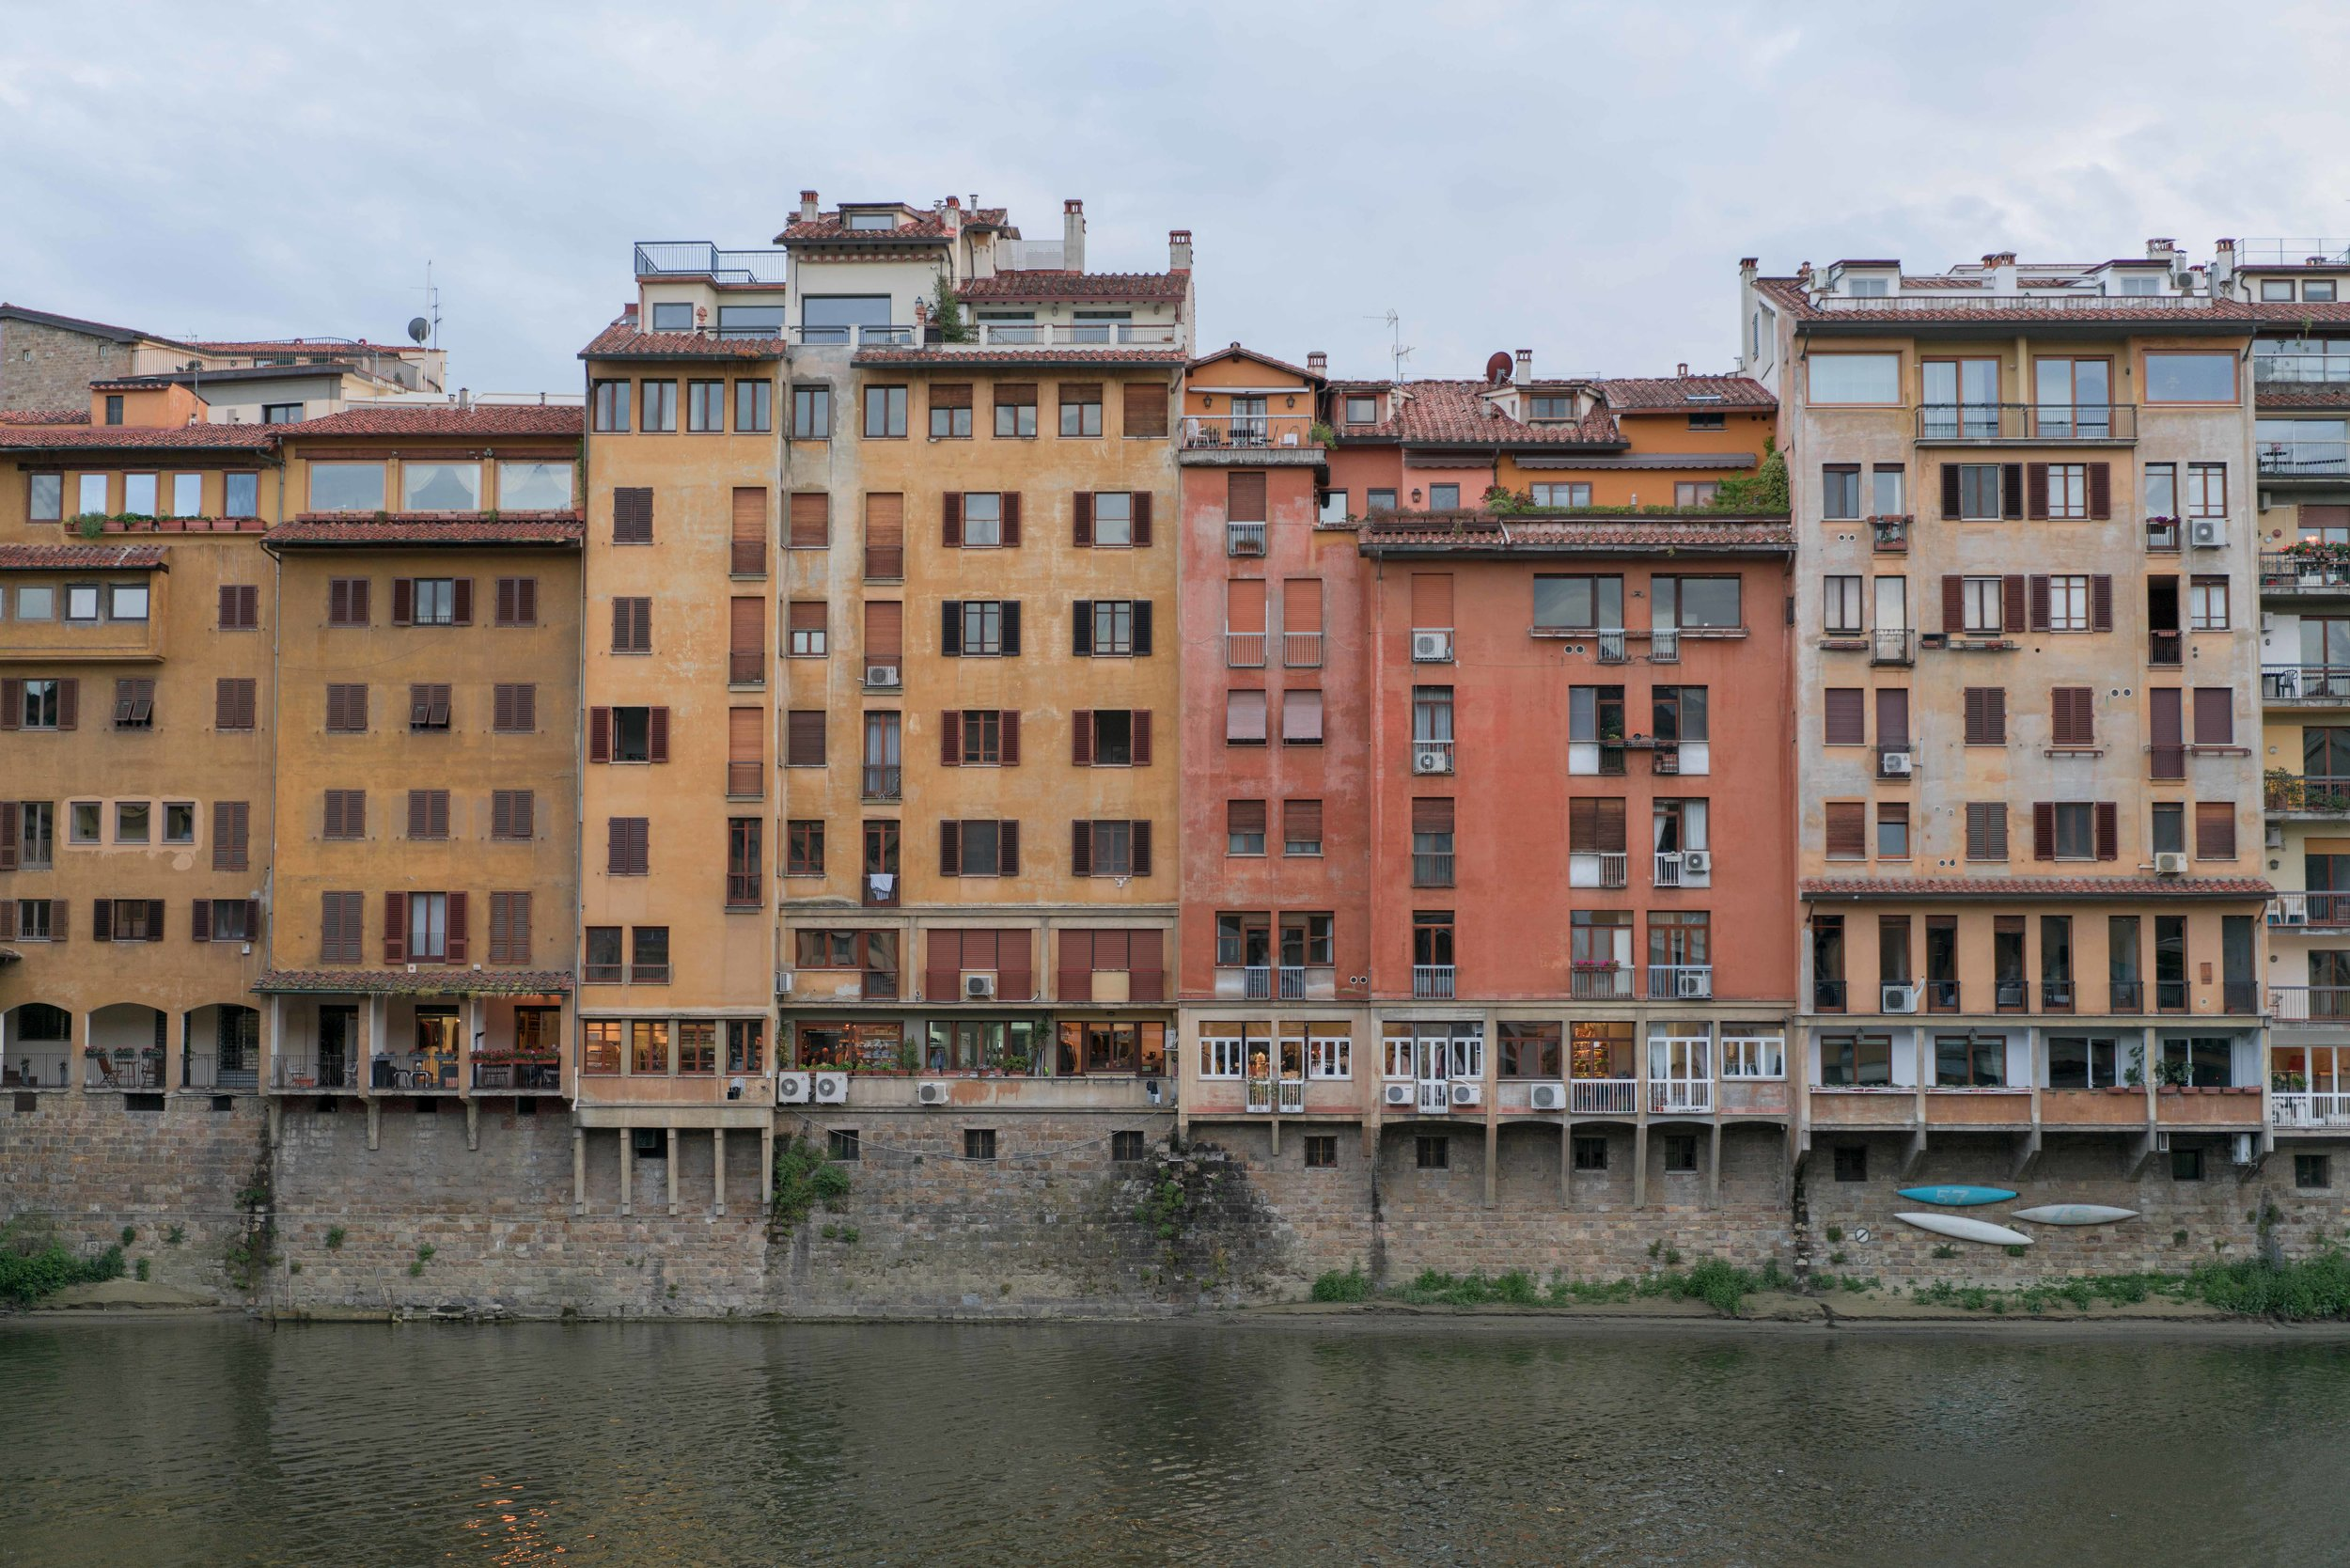 Holiday in Italy - Day 4 Florence - Sony A7R2 -- 34.jpg